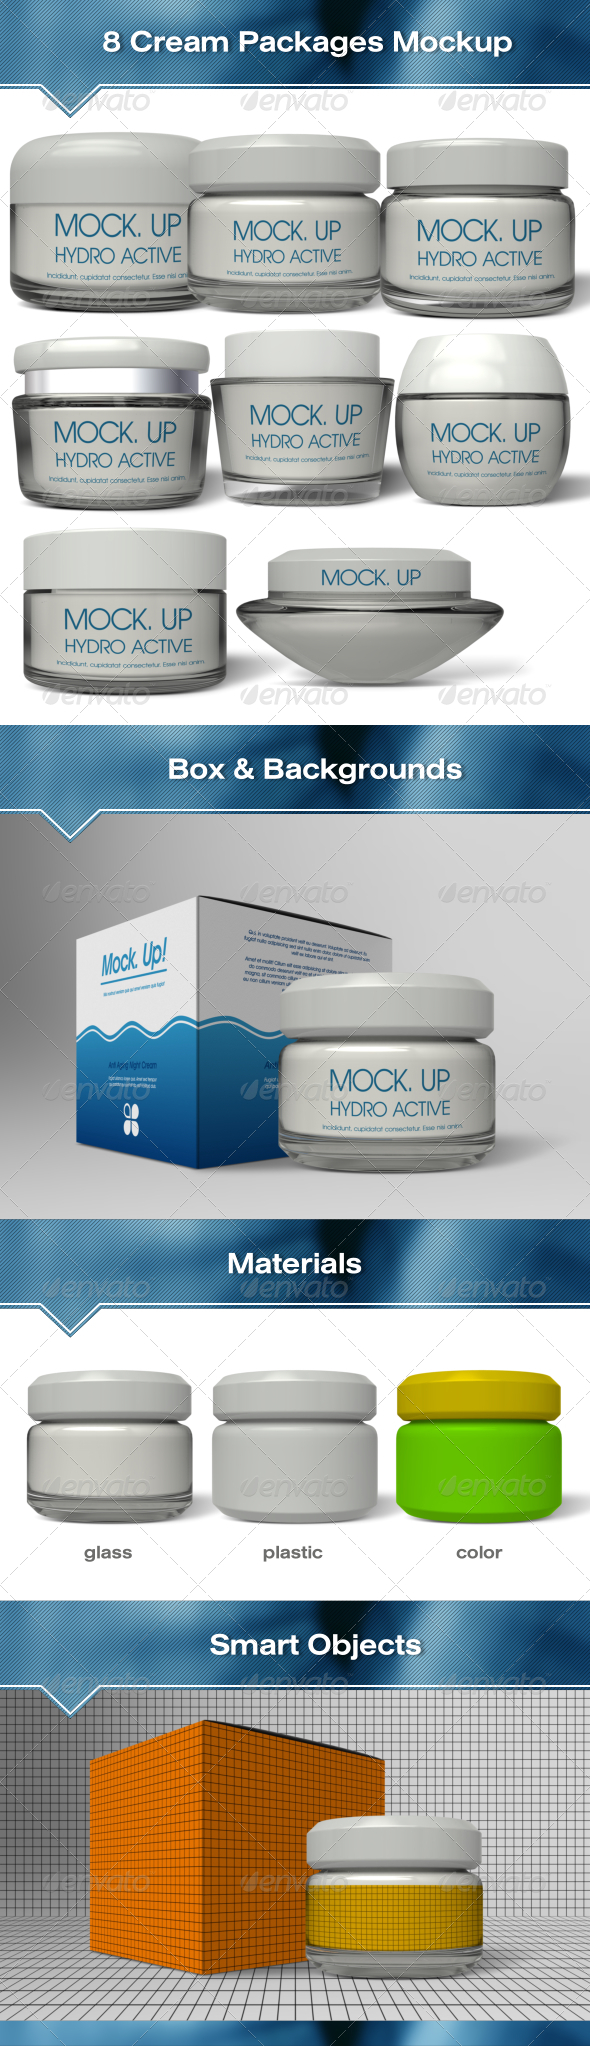 8 Glass & Plastic Cream Packages Mockup - Beauty Packaging